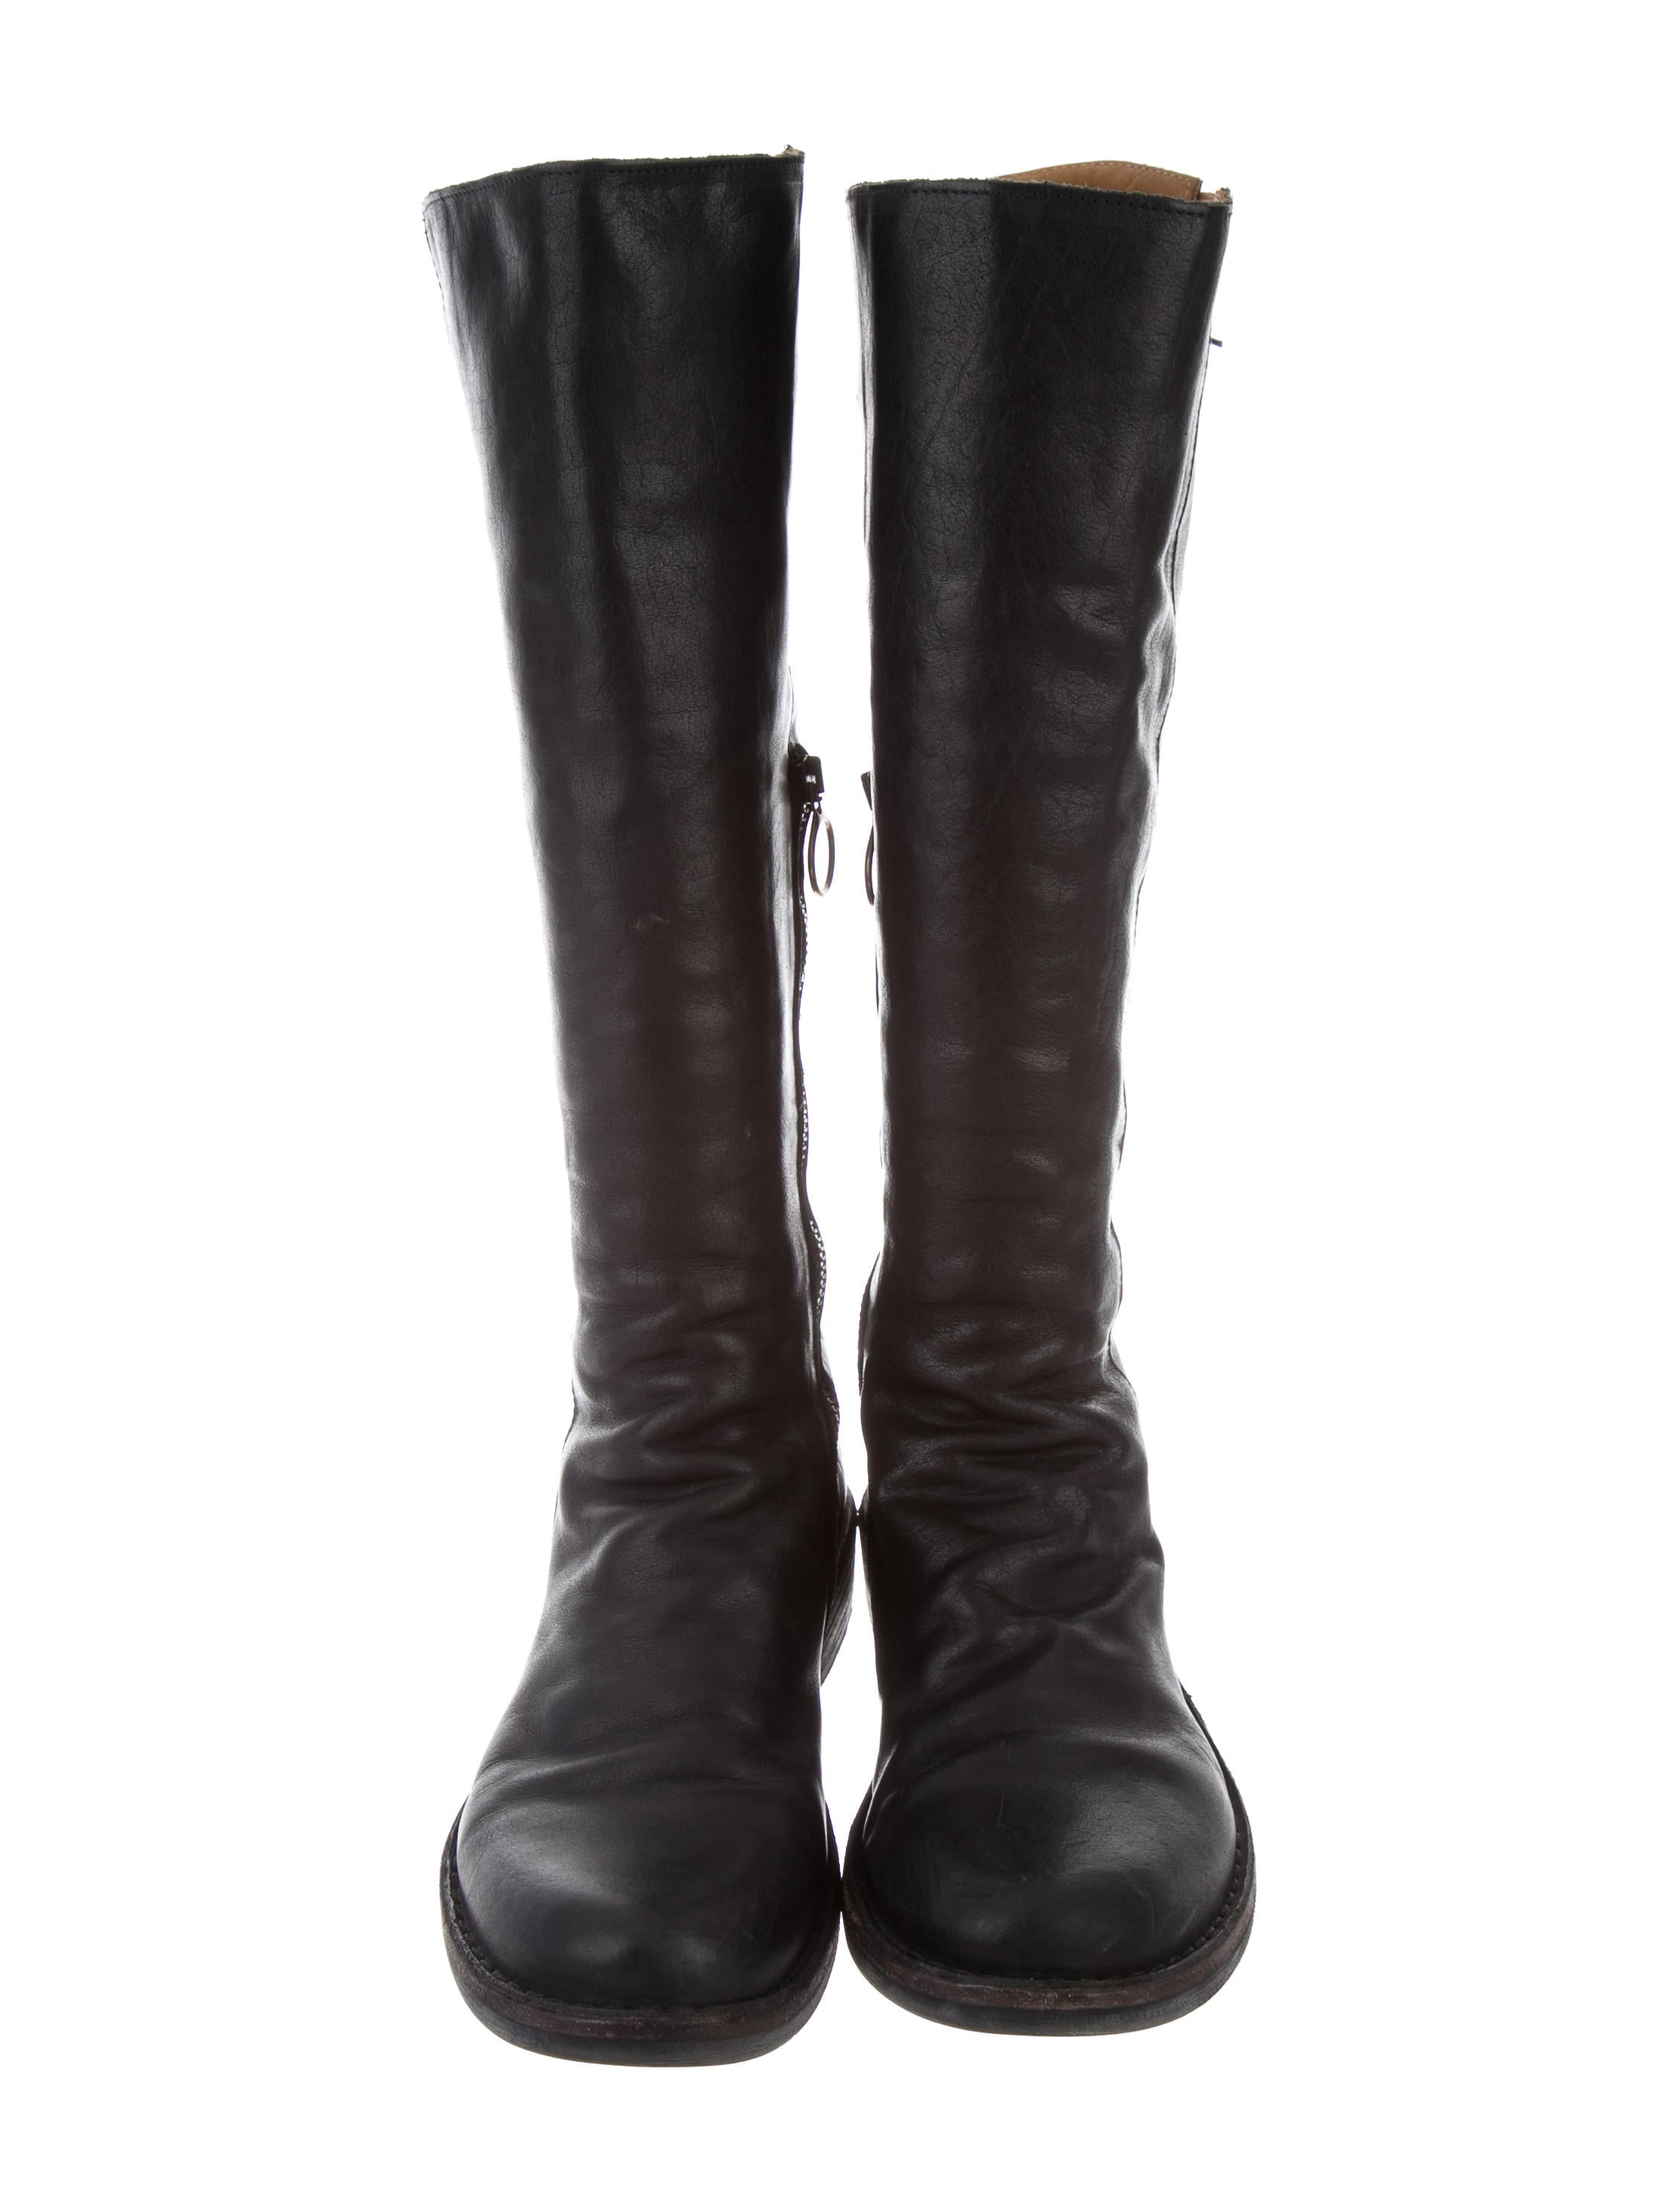 Fiorentini Baker Leather Knee High Boots